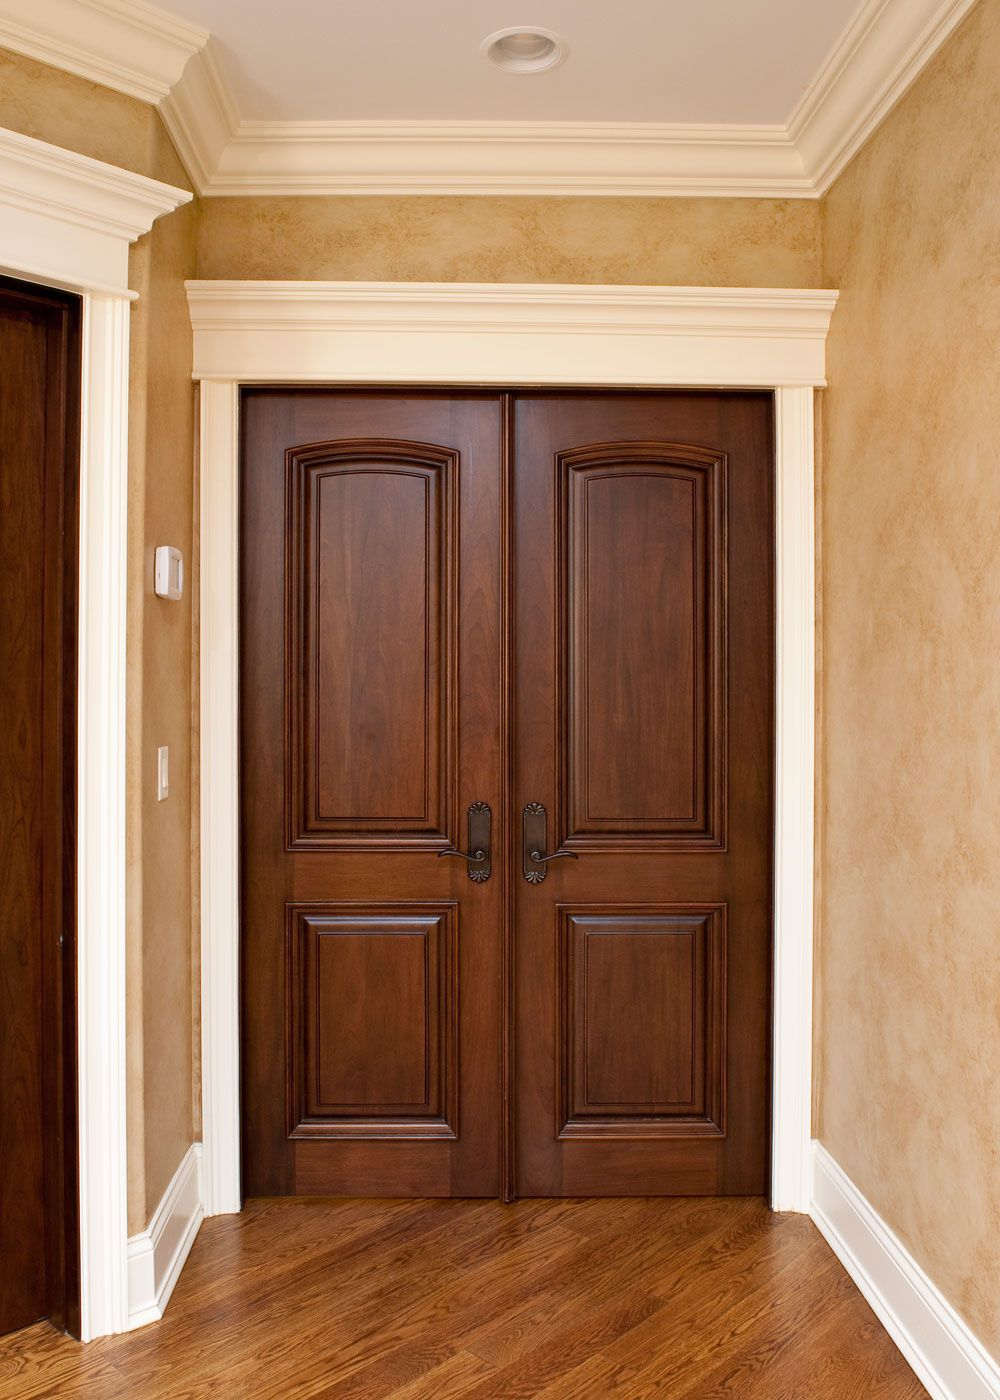 Black interior doors vs white - Brown Interior Doors Brown Vs Black Interior Doors Double Doors W Face Plates And Handles In Burnish Bronze